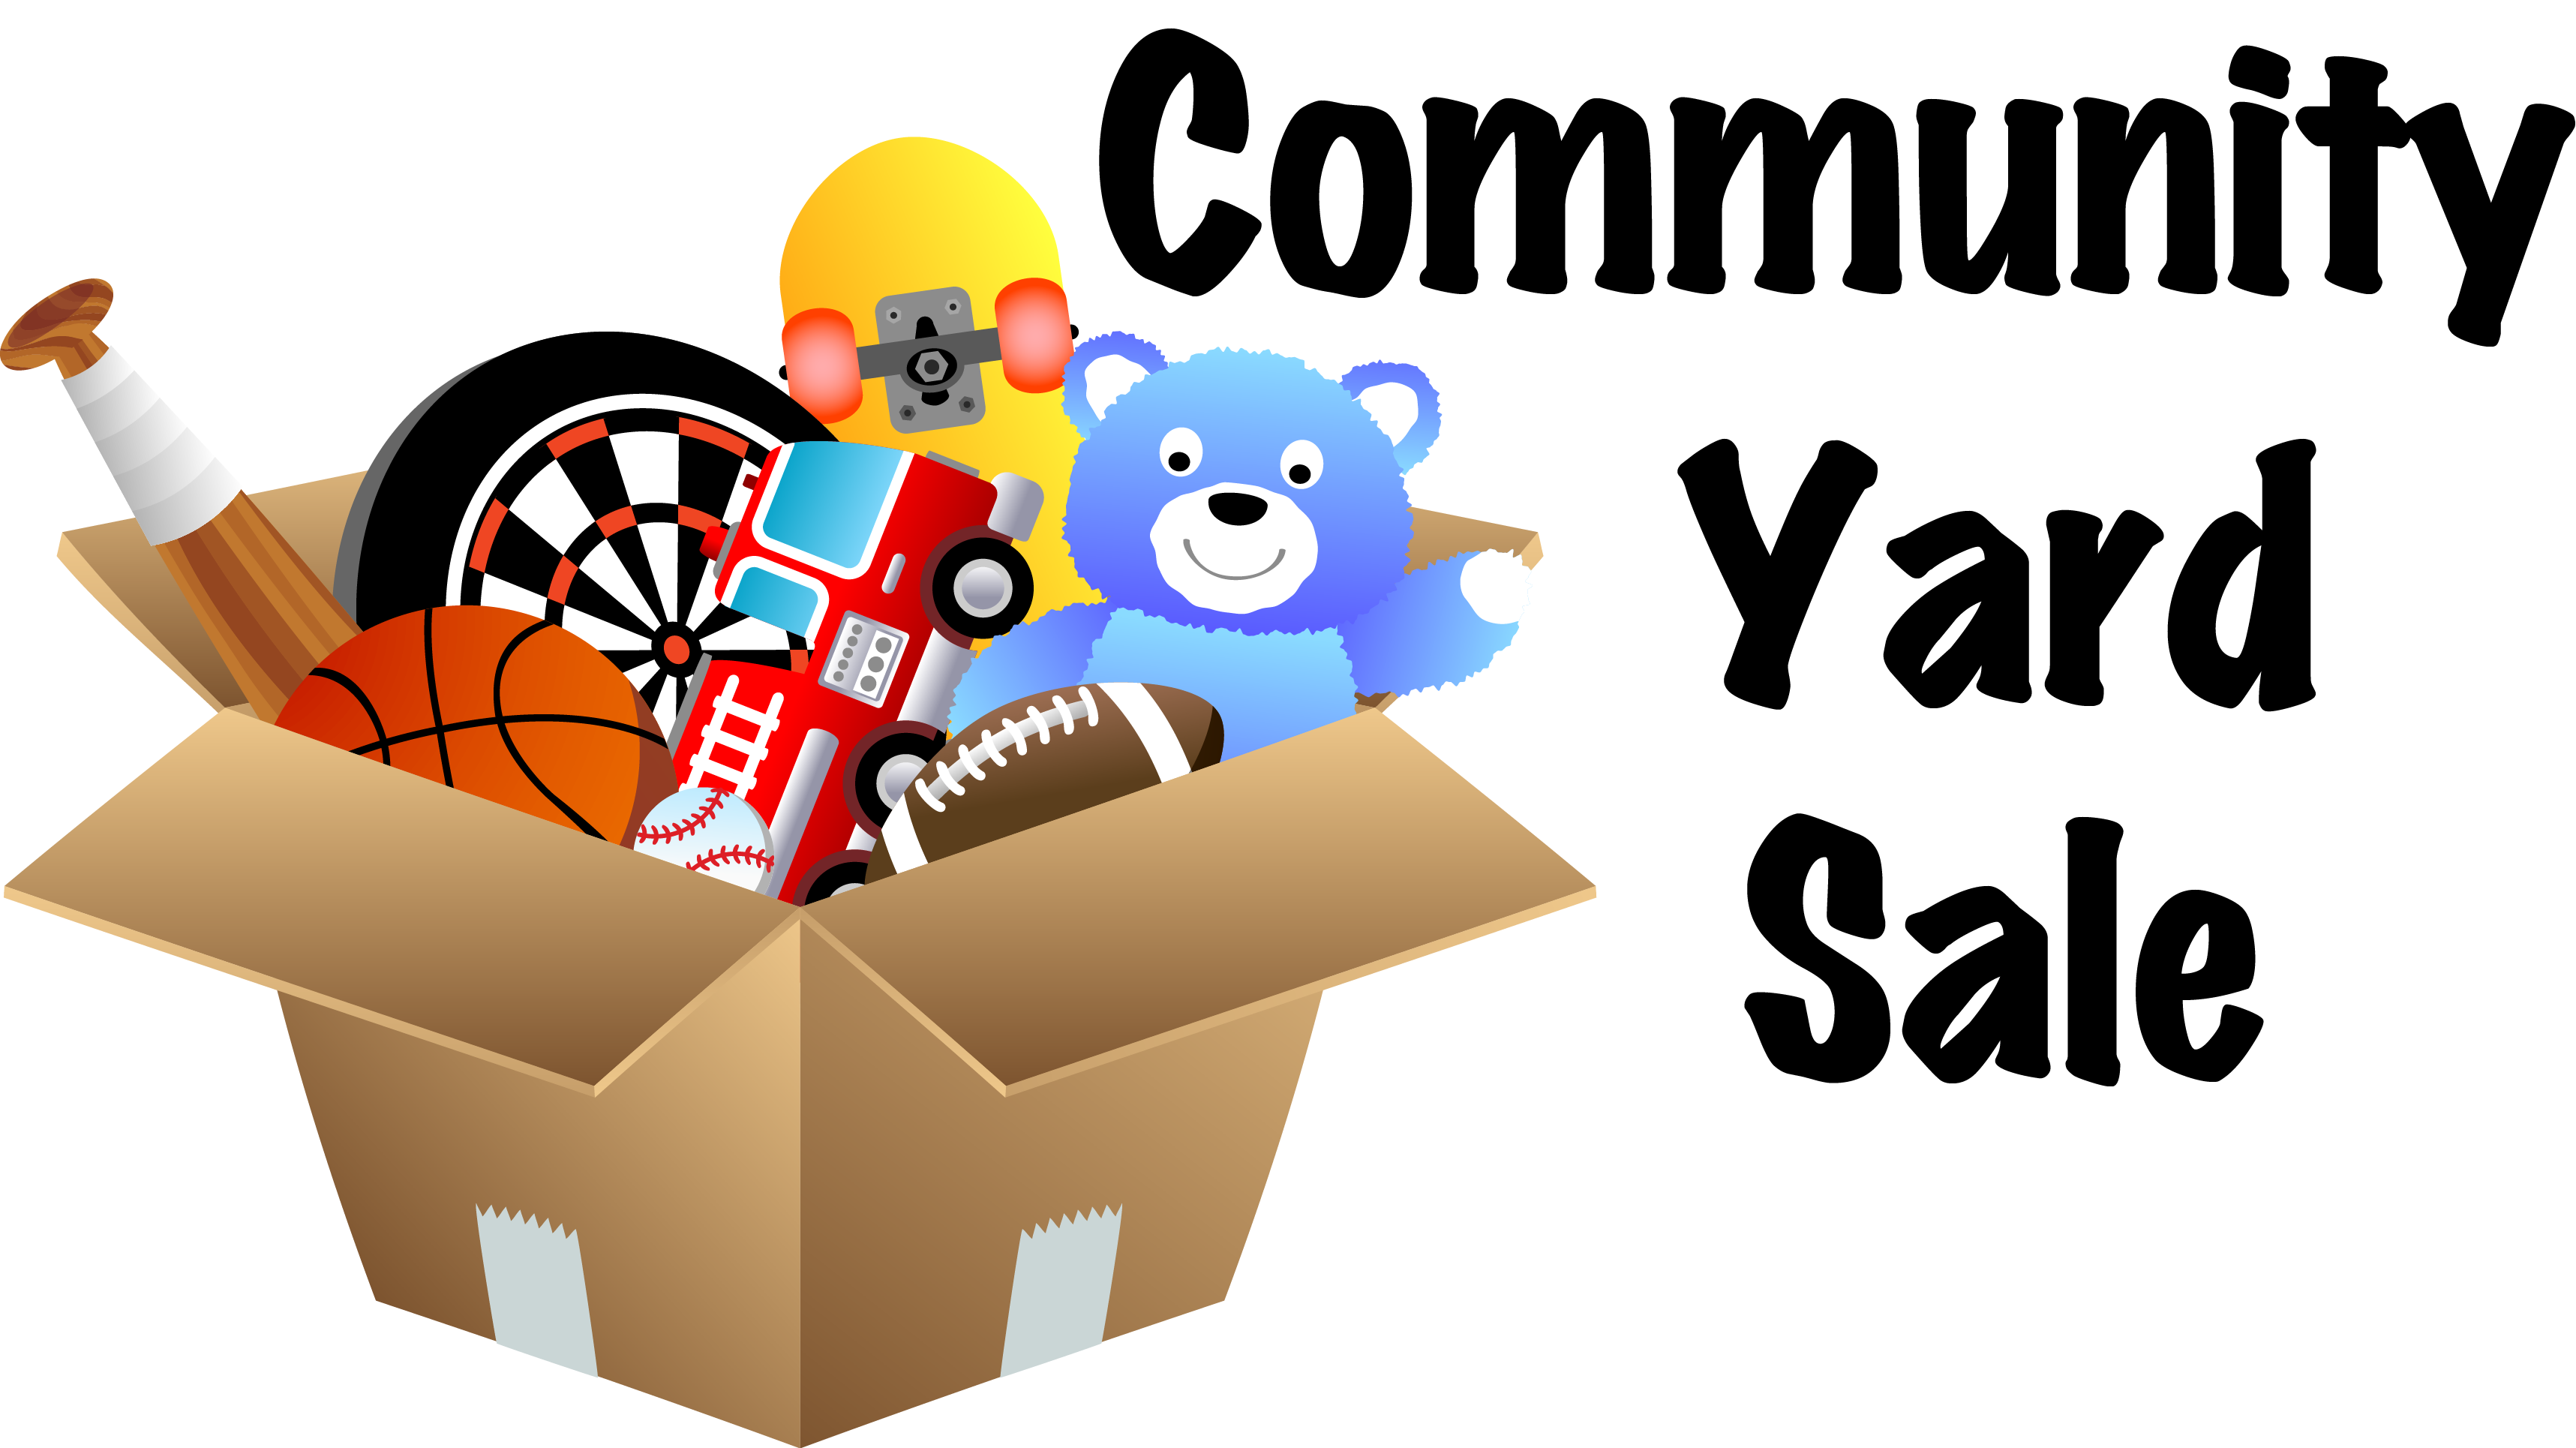 Sale clipart business sale. Community yard signs